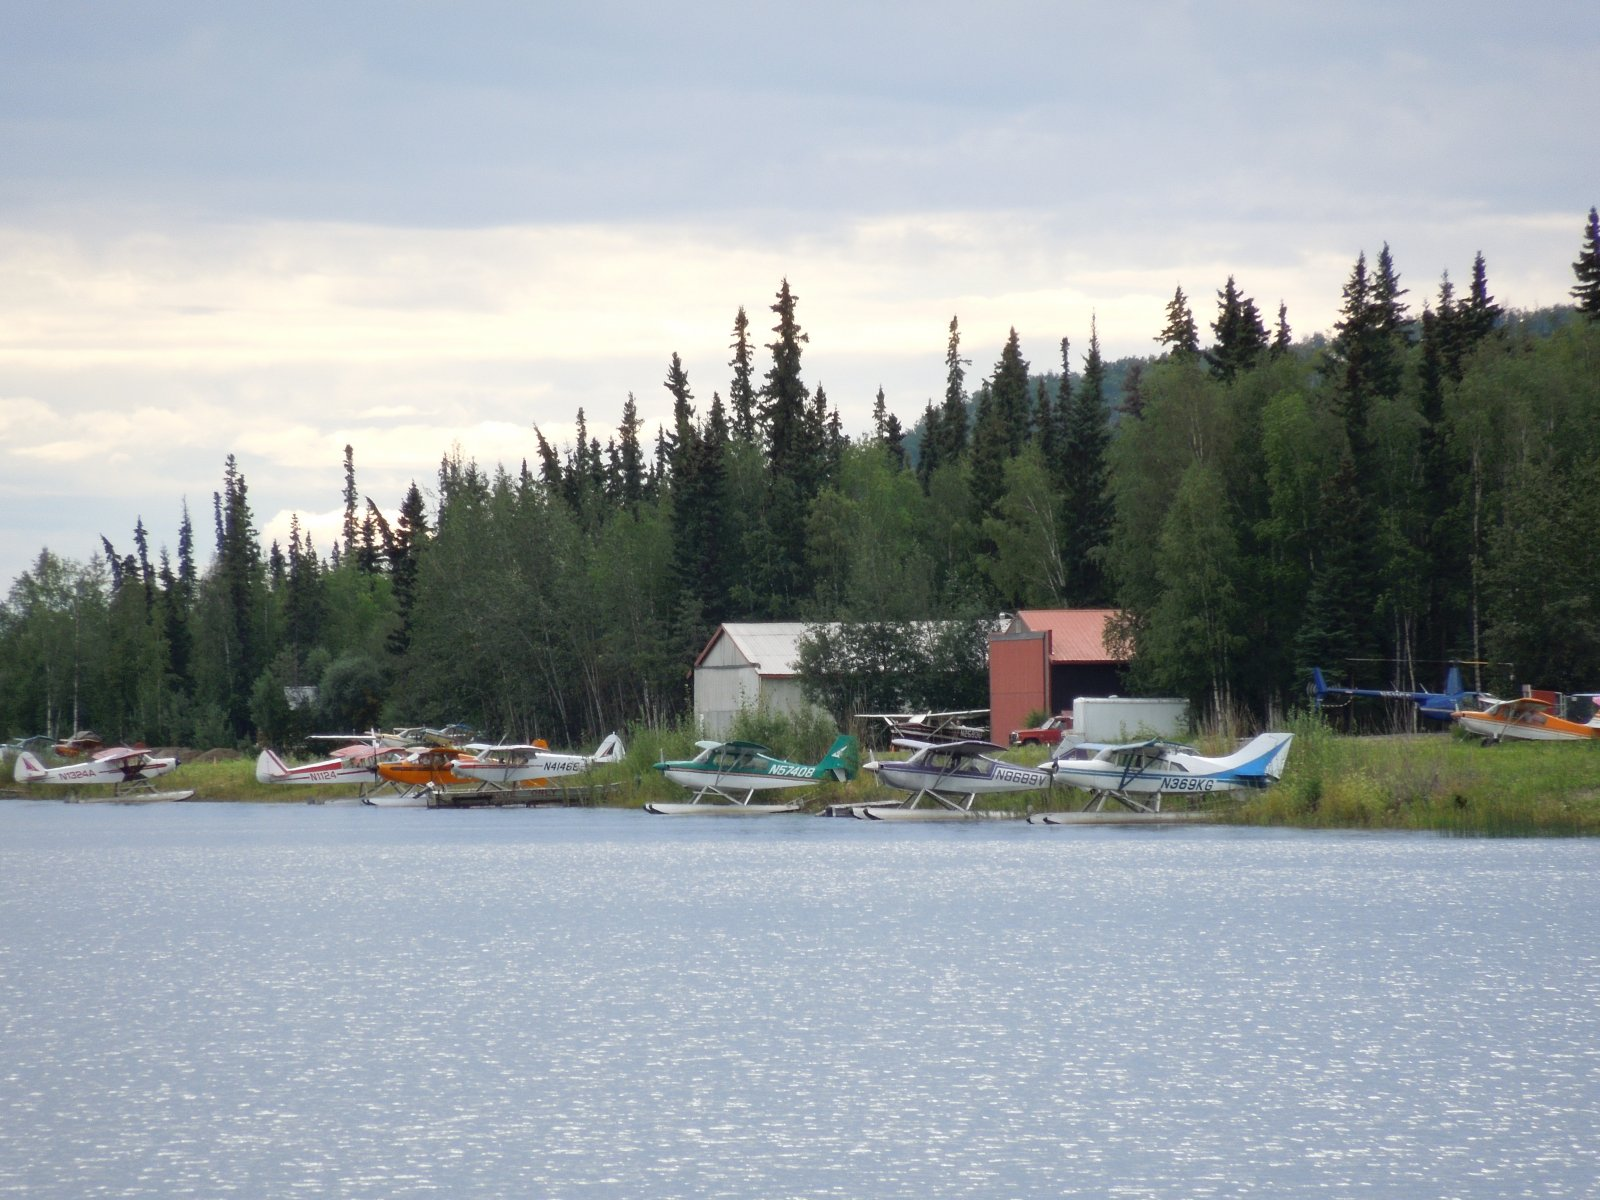 Click image for larger version  Name:Fairbanks 048.jpg Views:56 Size:296.5 KB ID:221303